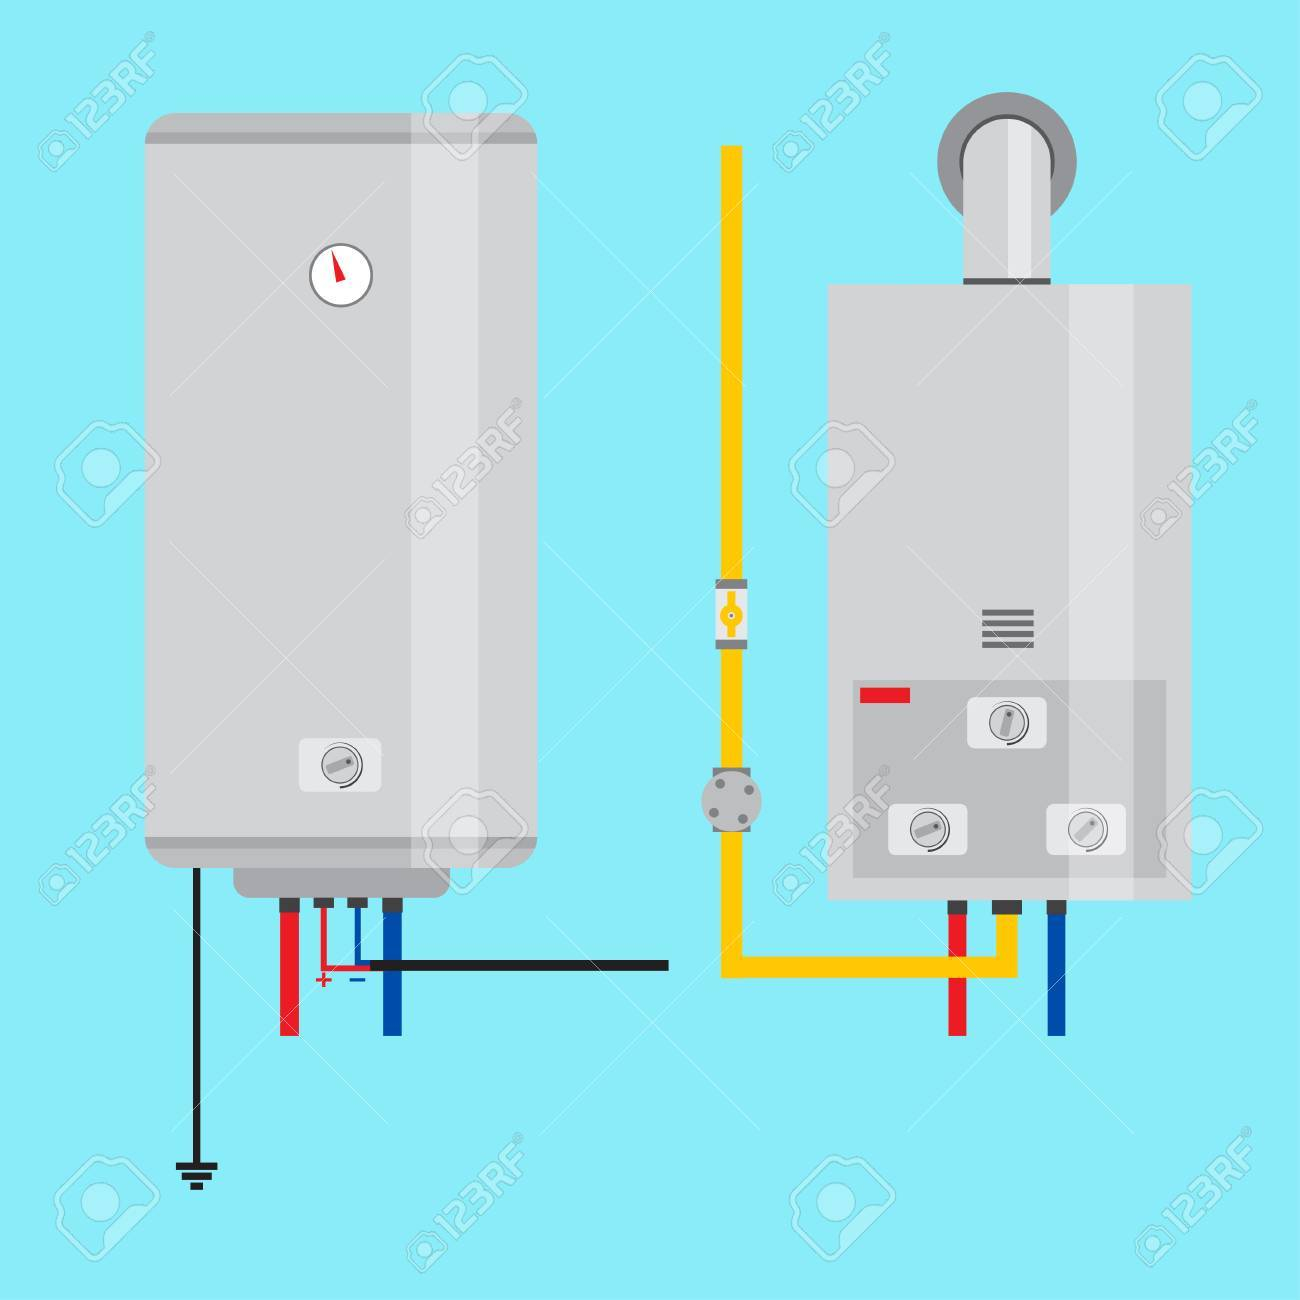 Electric Water Heater Design Diagram - Trusted Wiring Diagram